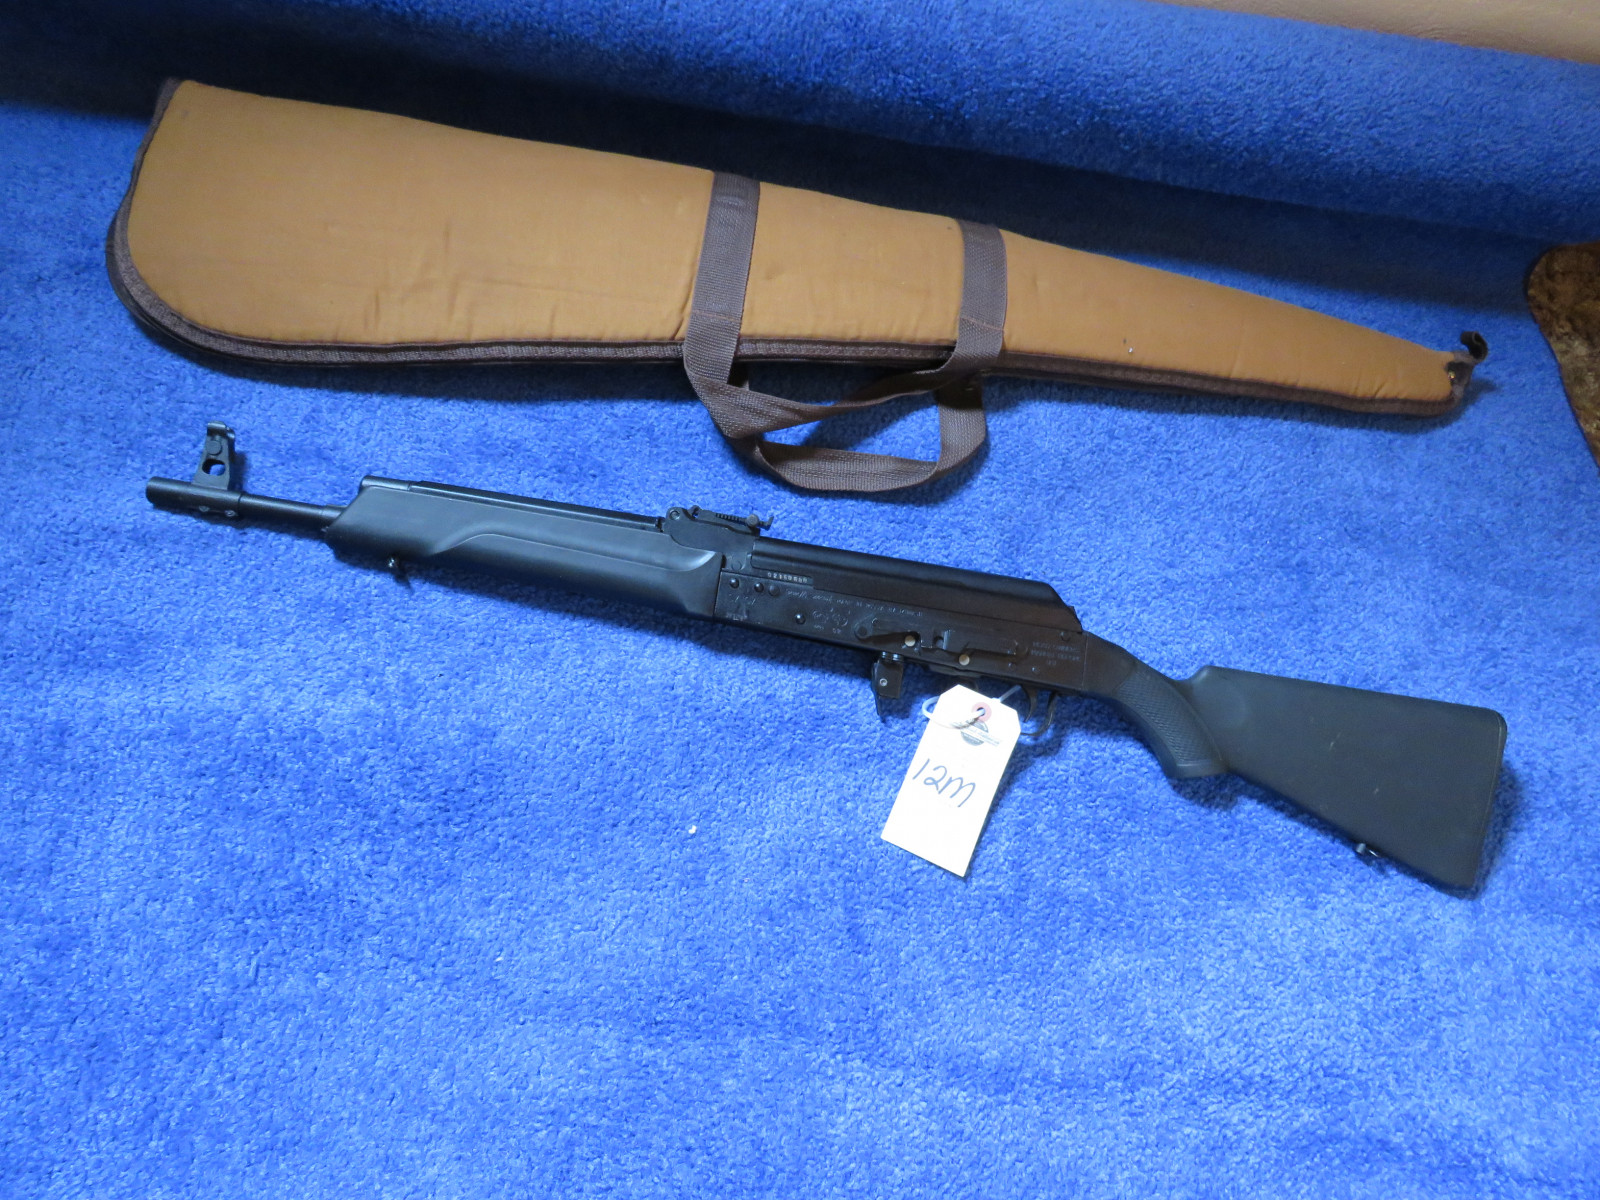 SAIGA 223 Semi-Automatic Rifle 2160680 - Image 2